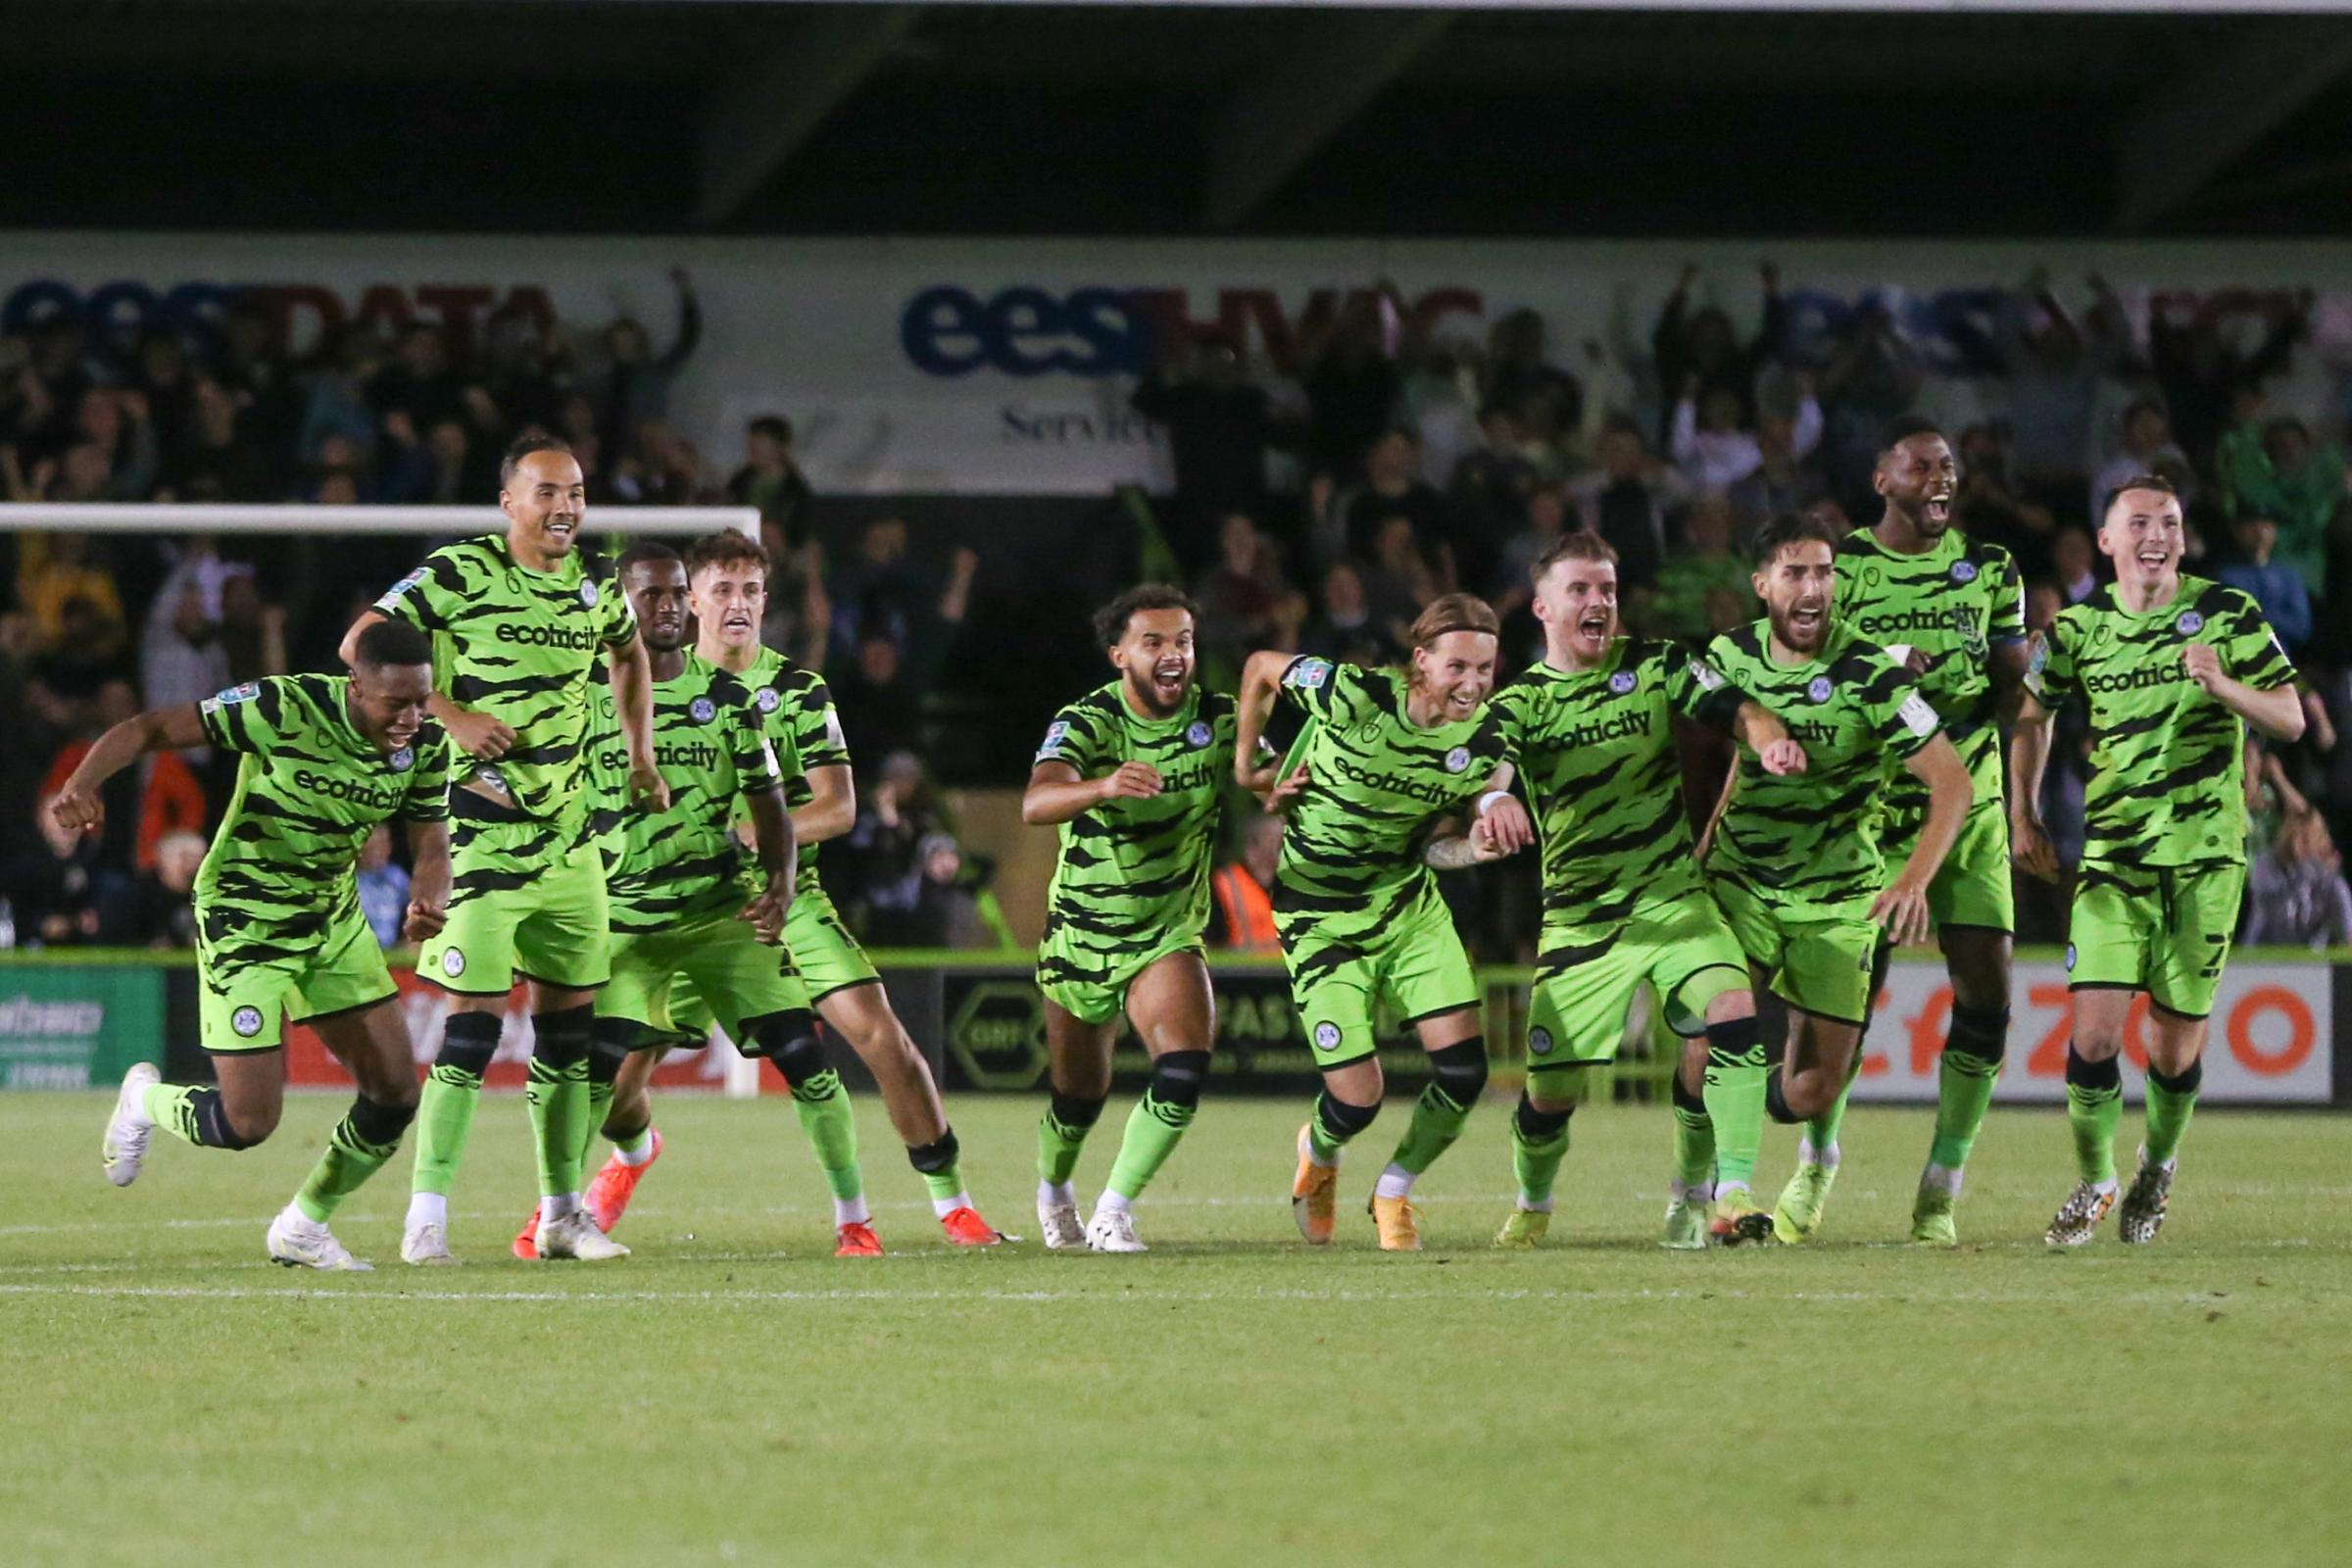 Thomas the hero as Rovers beat Bristol City on penalties - Stroud News and Journal